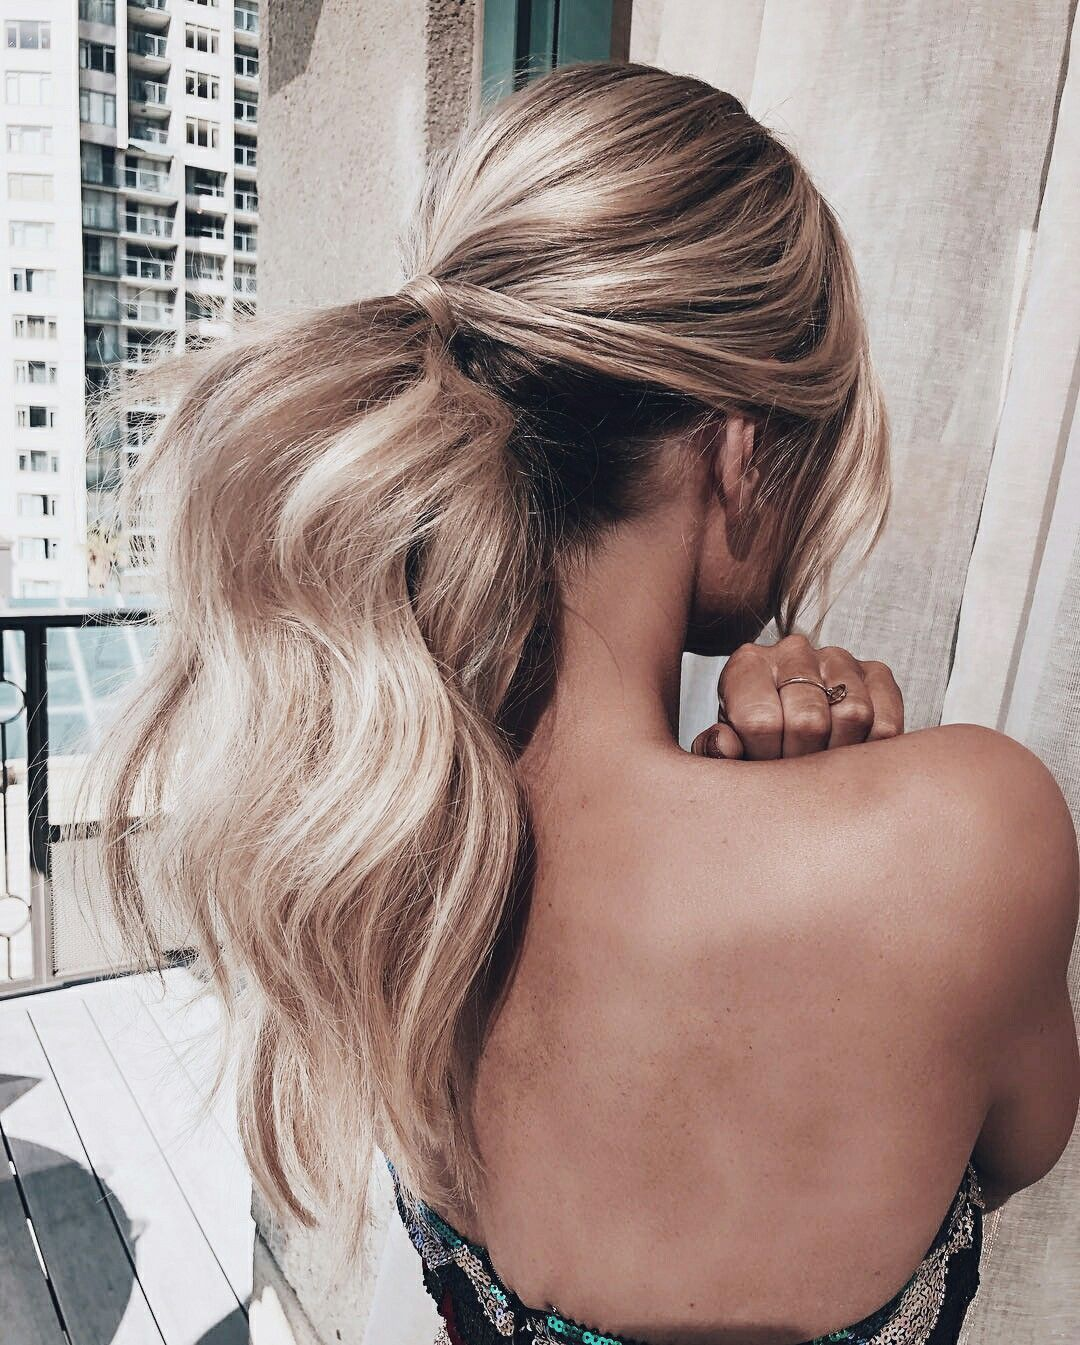 Long Hair Ponytail Hairstyle Loose Curls Ponytail With Curls Blonde Hair Dyed Hair Hair Color Hair Ideas We Hair Styles Long Hair Styles Best Hair Dye